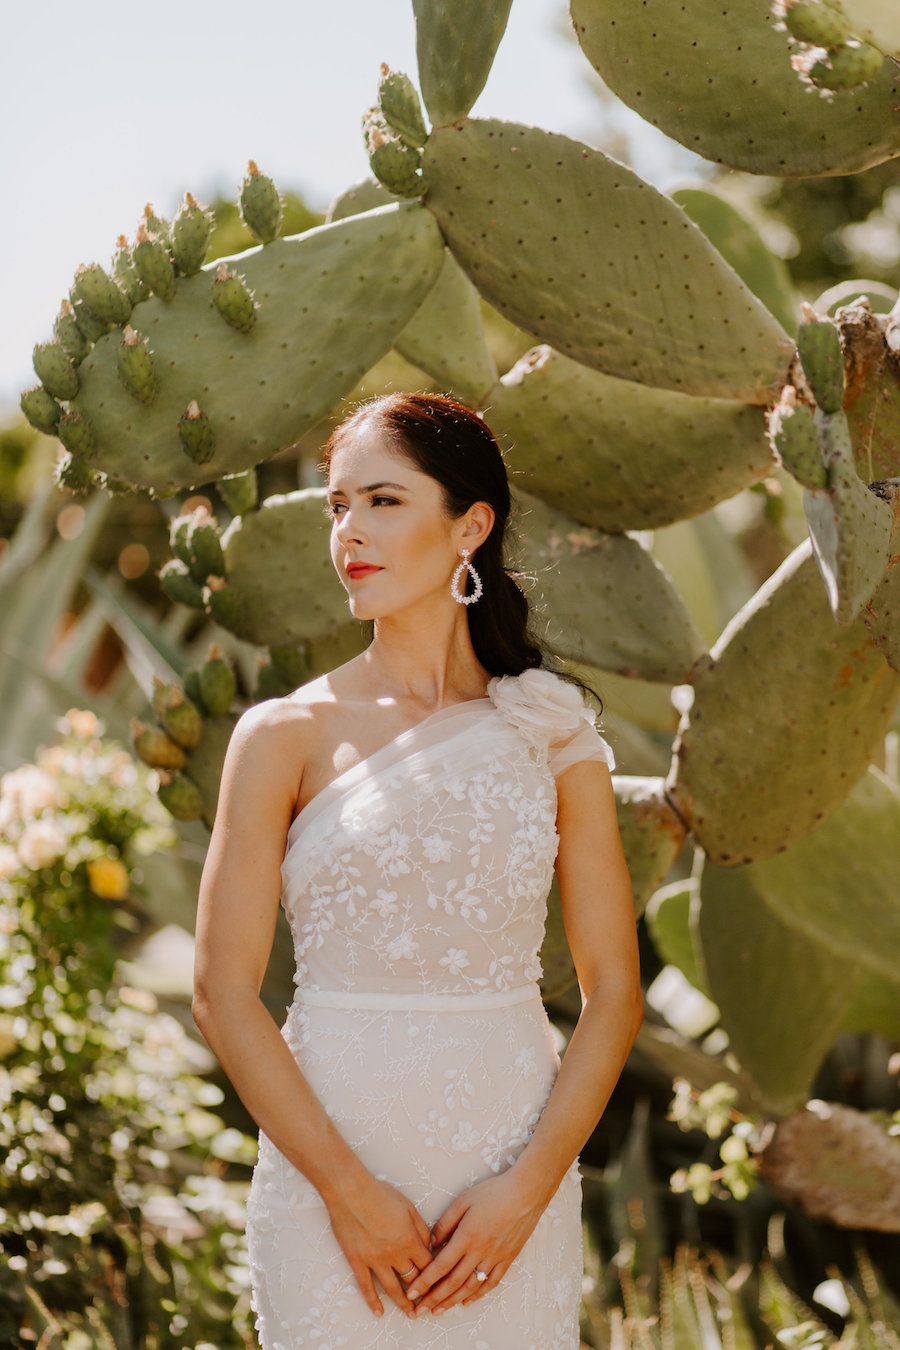 Desert-Inspired Napa Valley Wedding Featured on BRIDES4.jpg